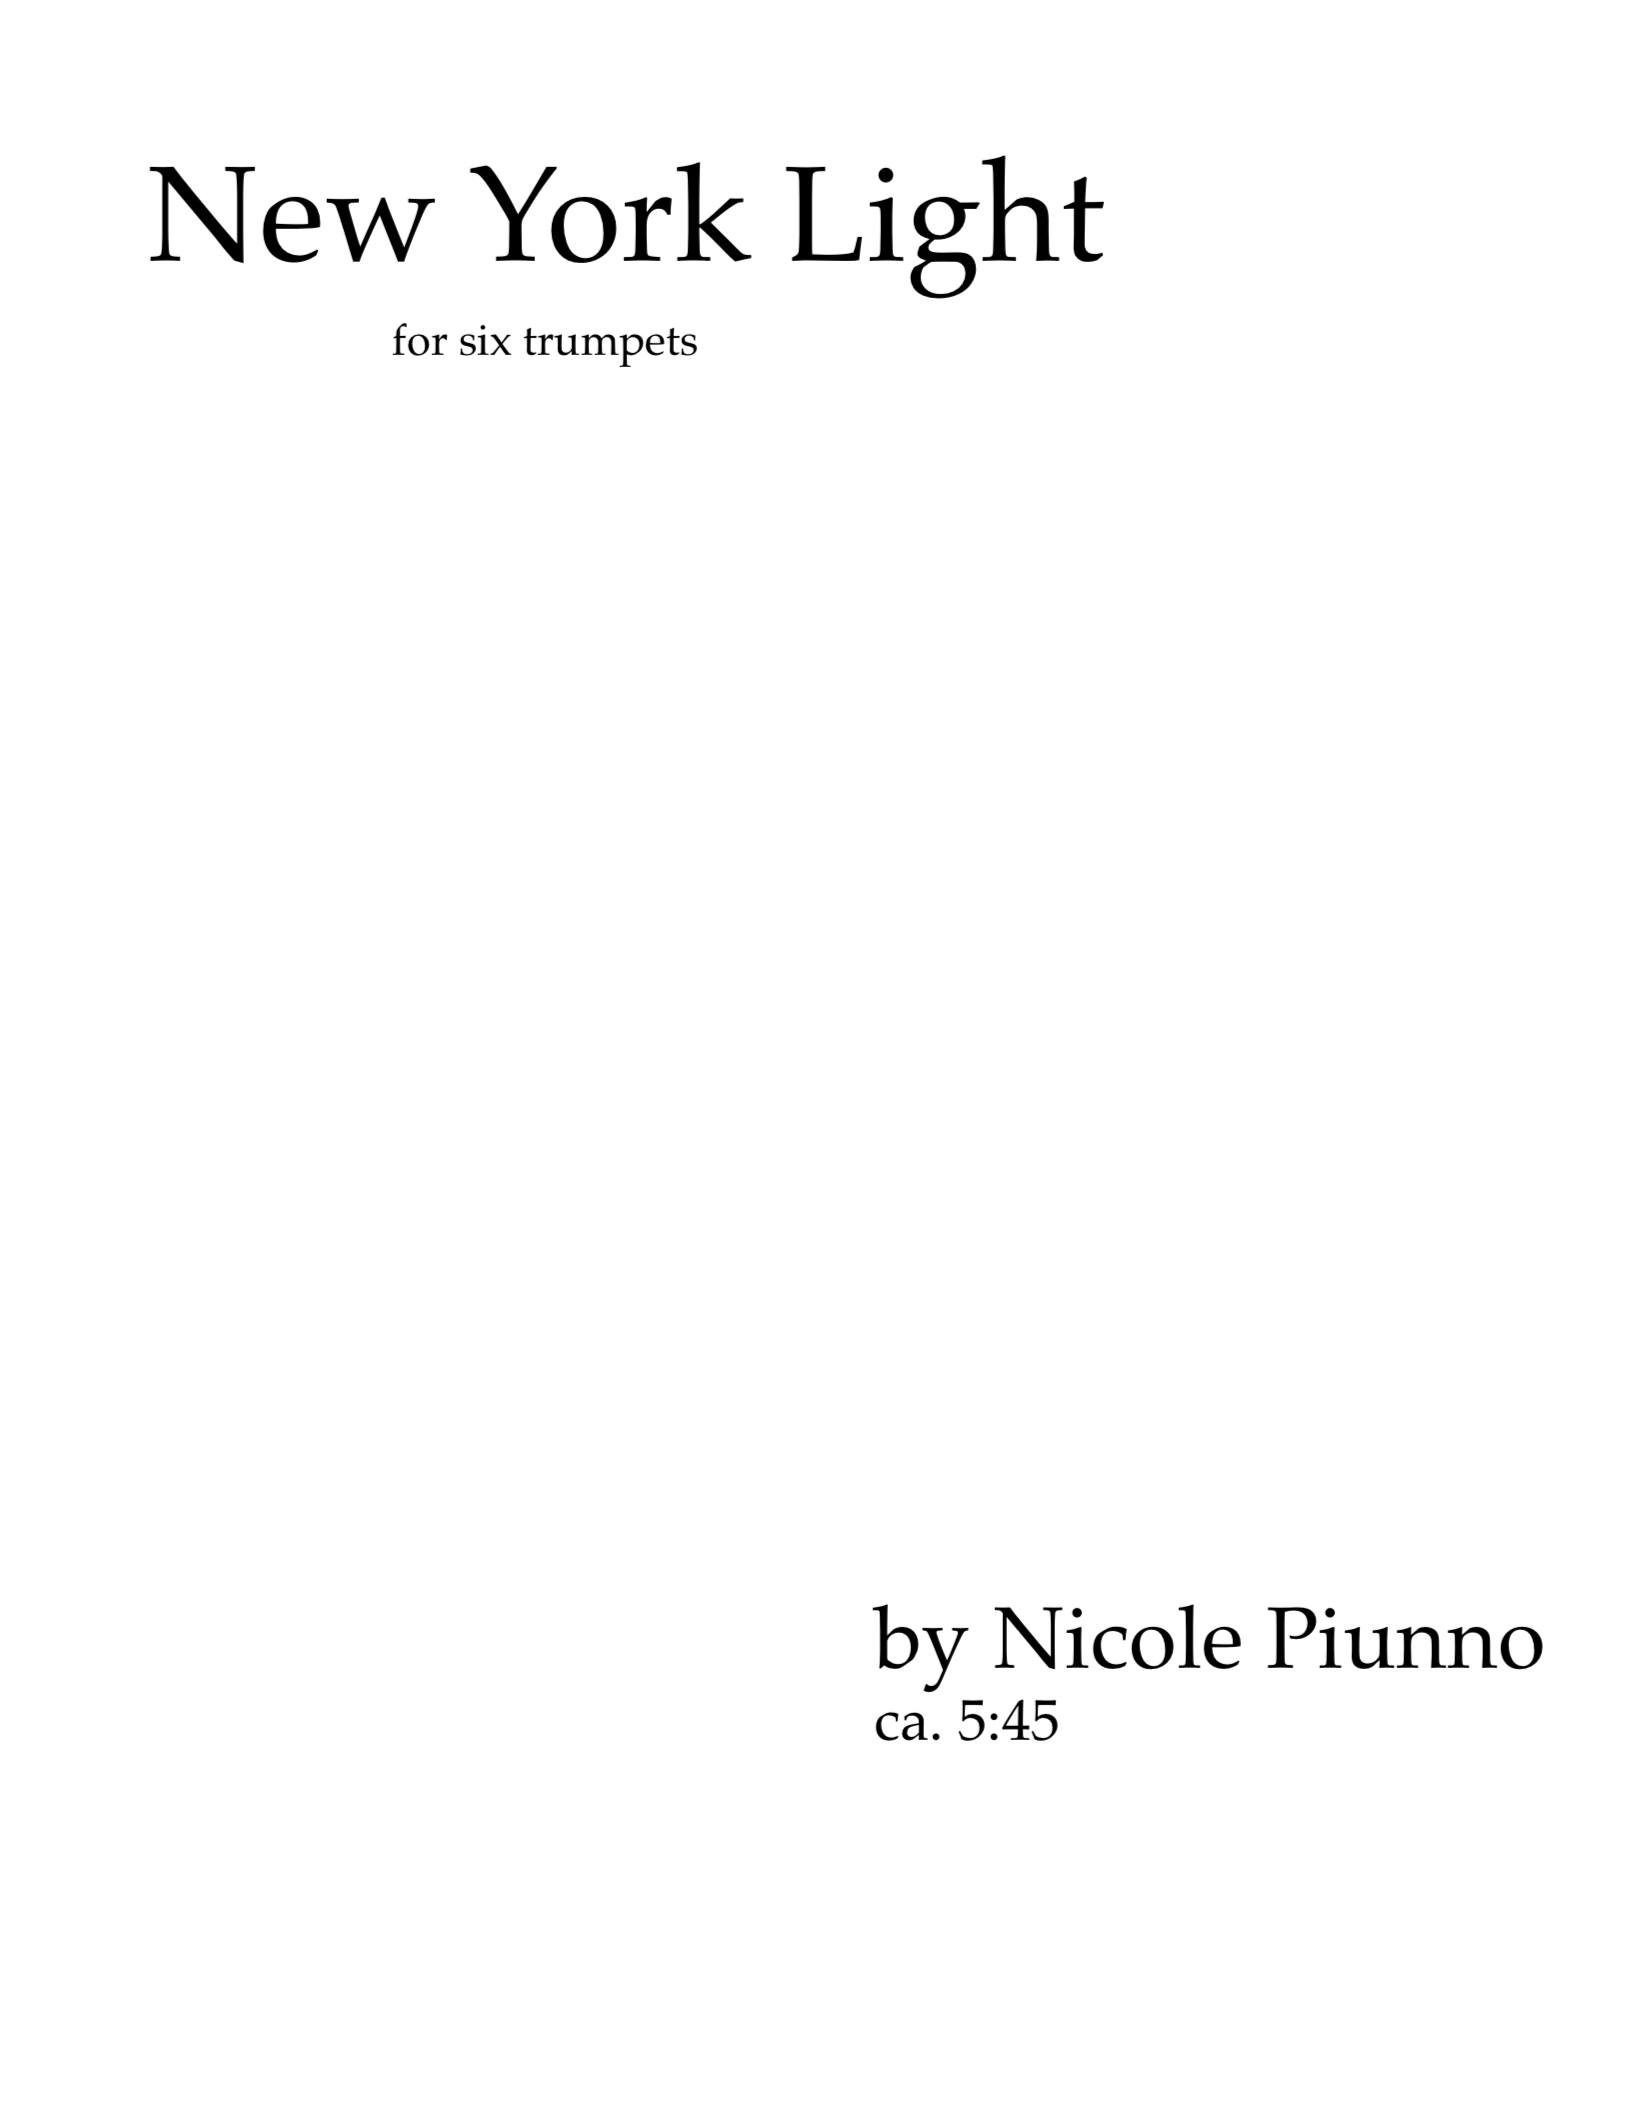 New York Light by Nicole Piunno